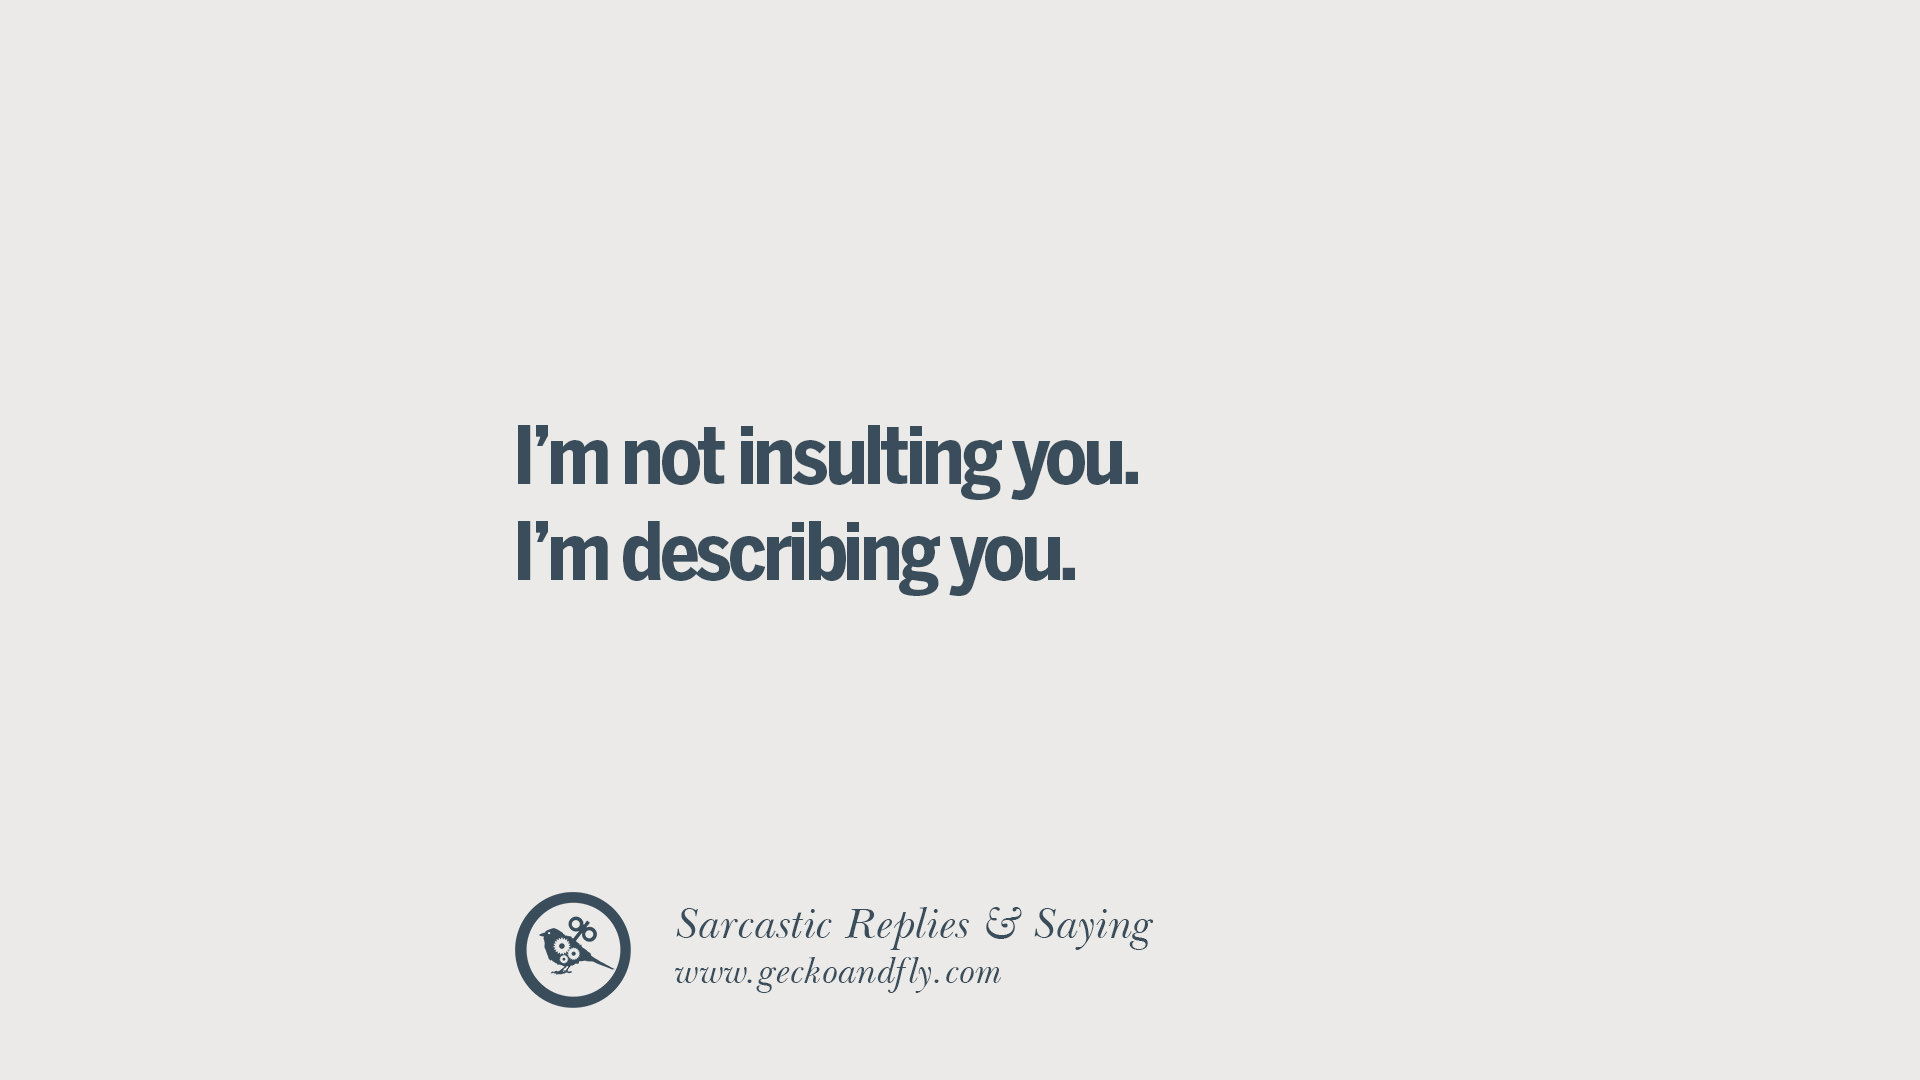 Sarcastic Love Quotes For Him Tumblr : describing you. Funny Non-Swearing Insults And Sarcastic Quotes ...